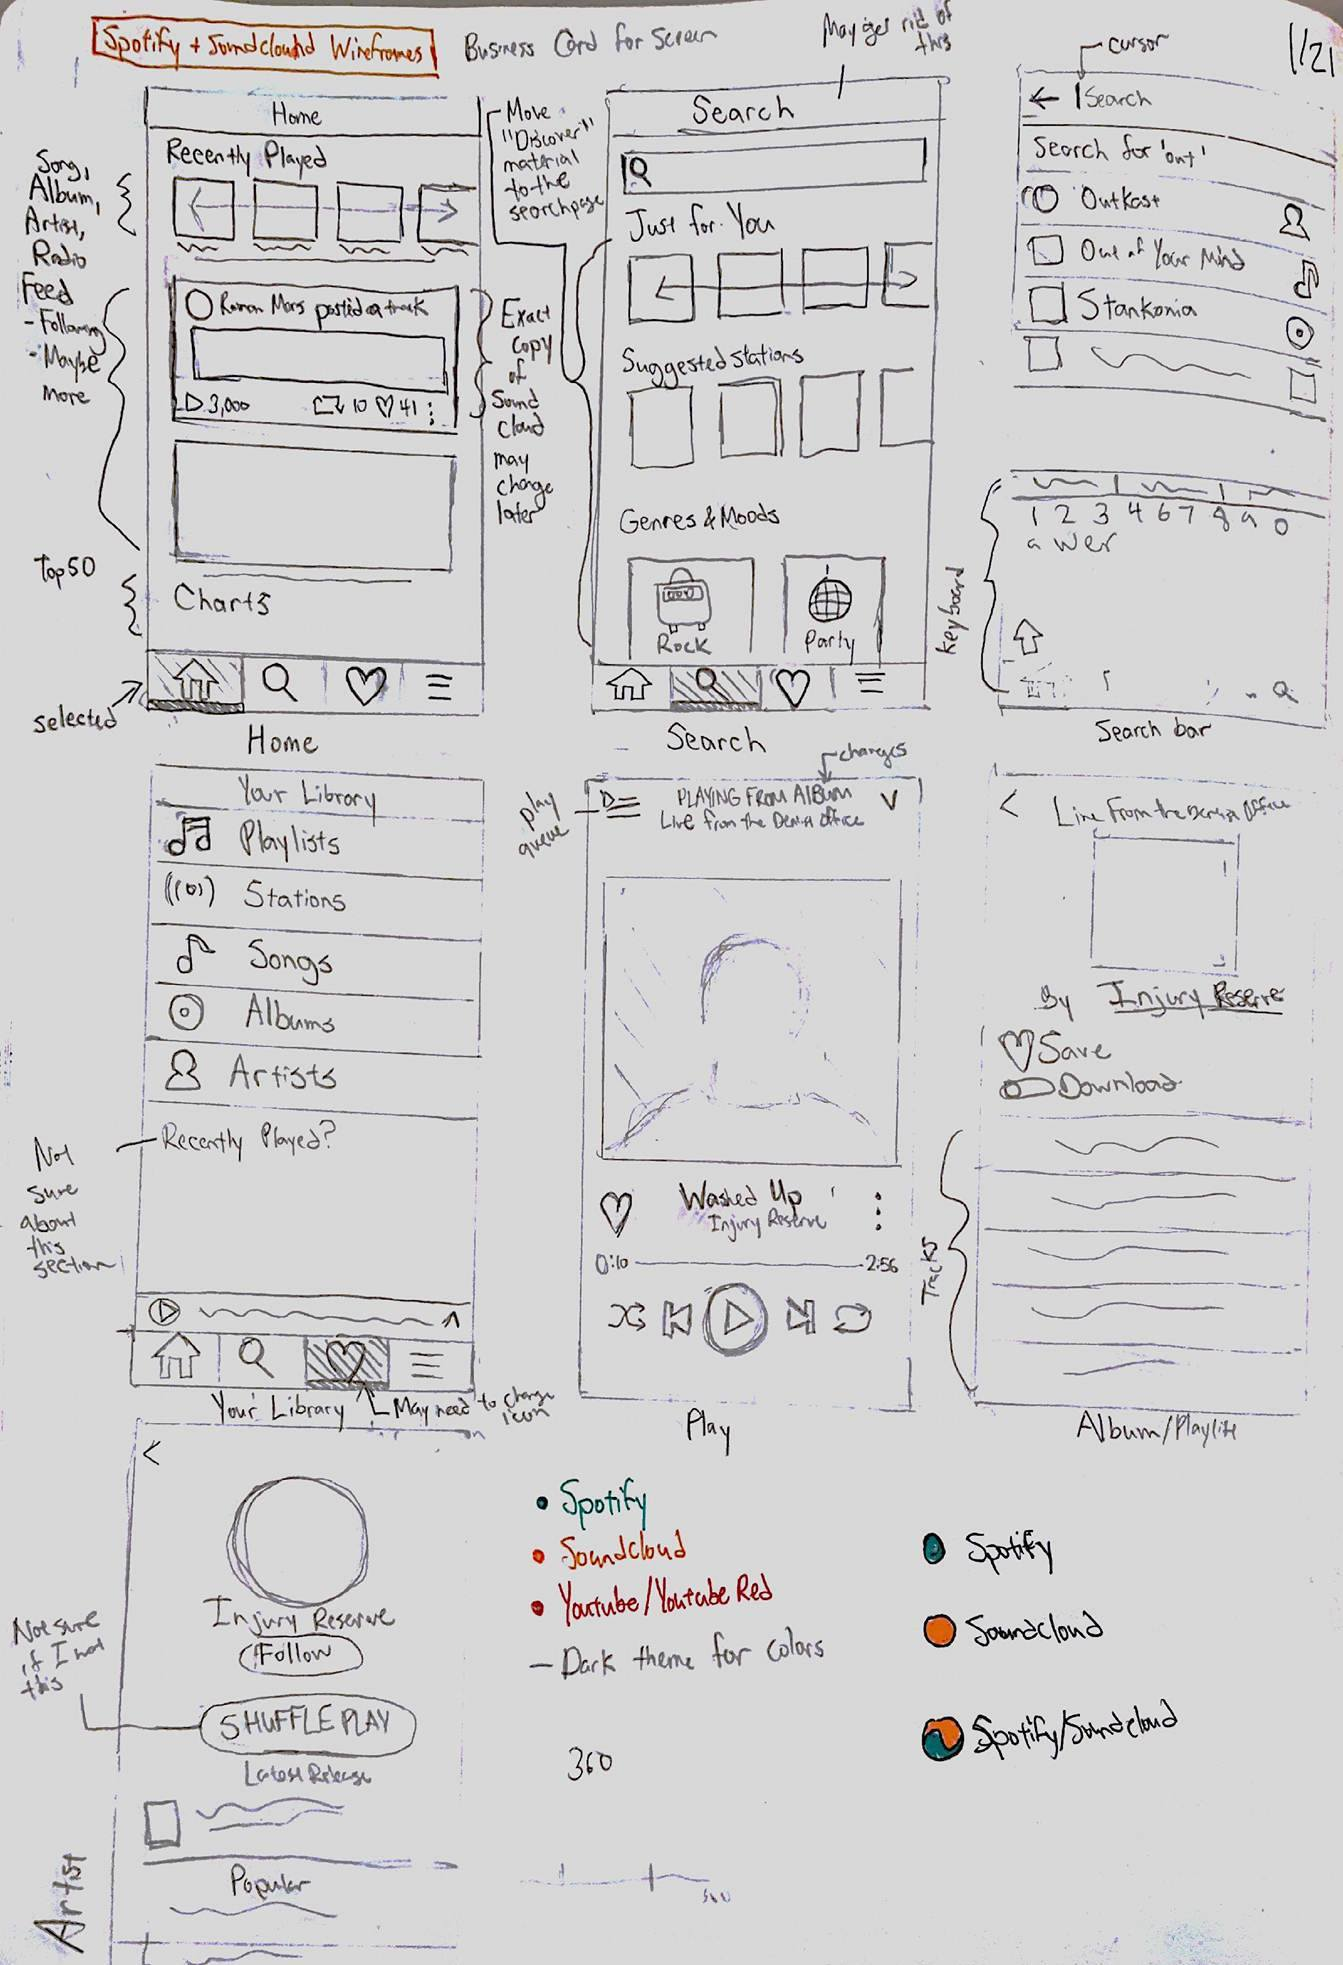 Initial Sketches of Muse Music Player